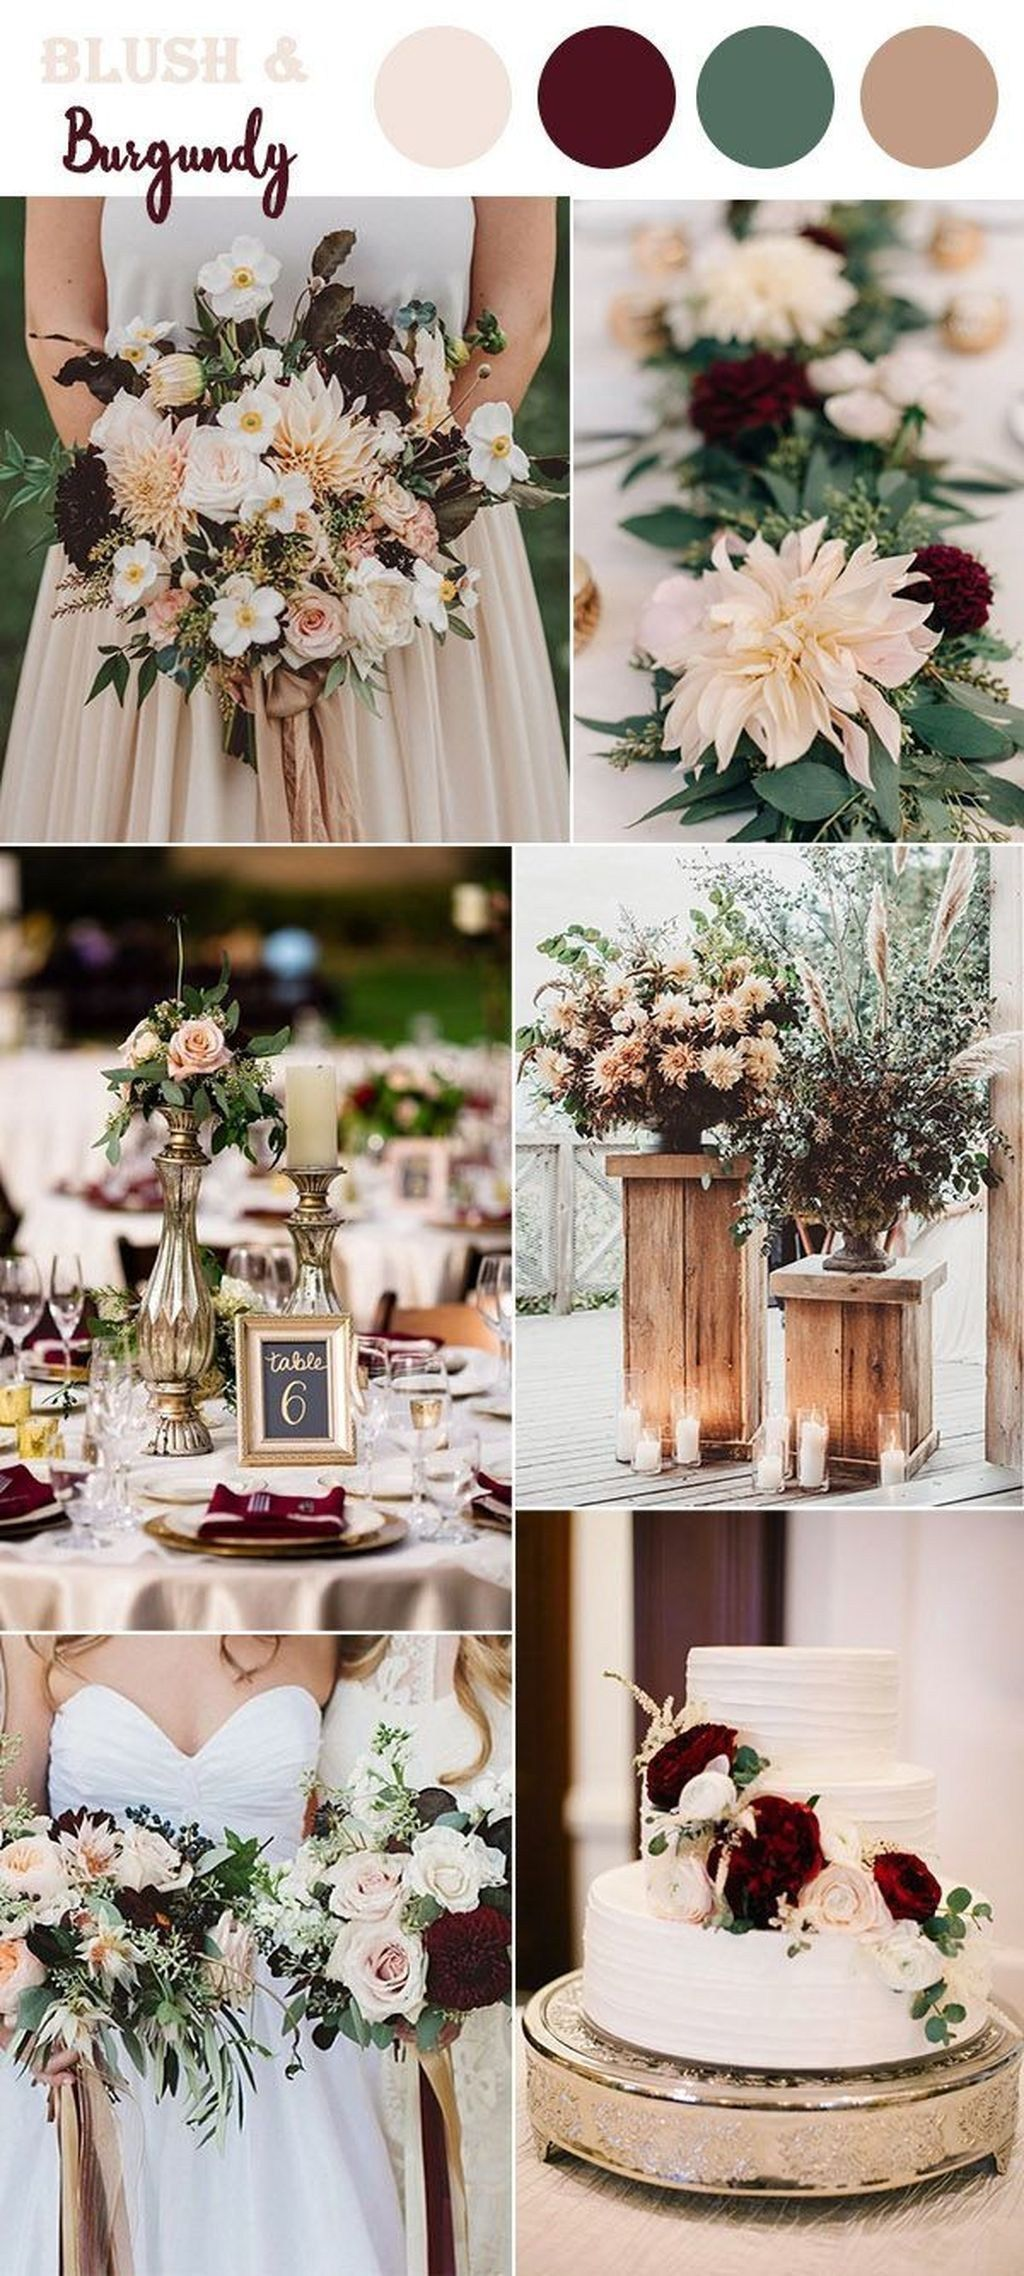 Wedding decorations yellow and white november 2018 I like the top right floral and greens table runner on the white